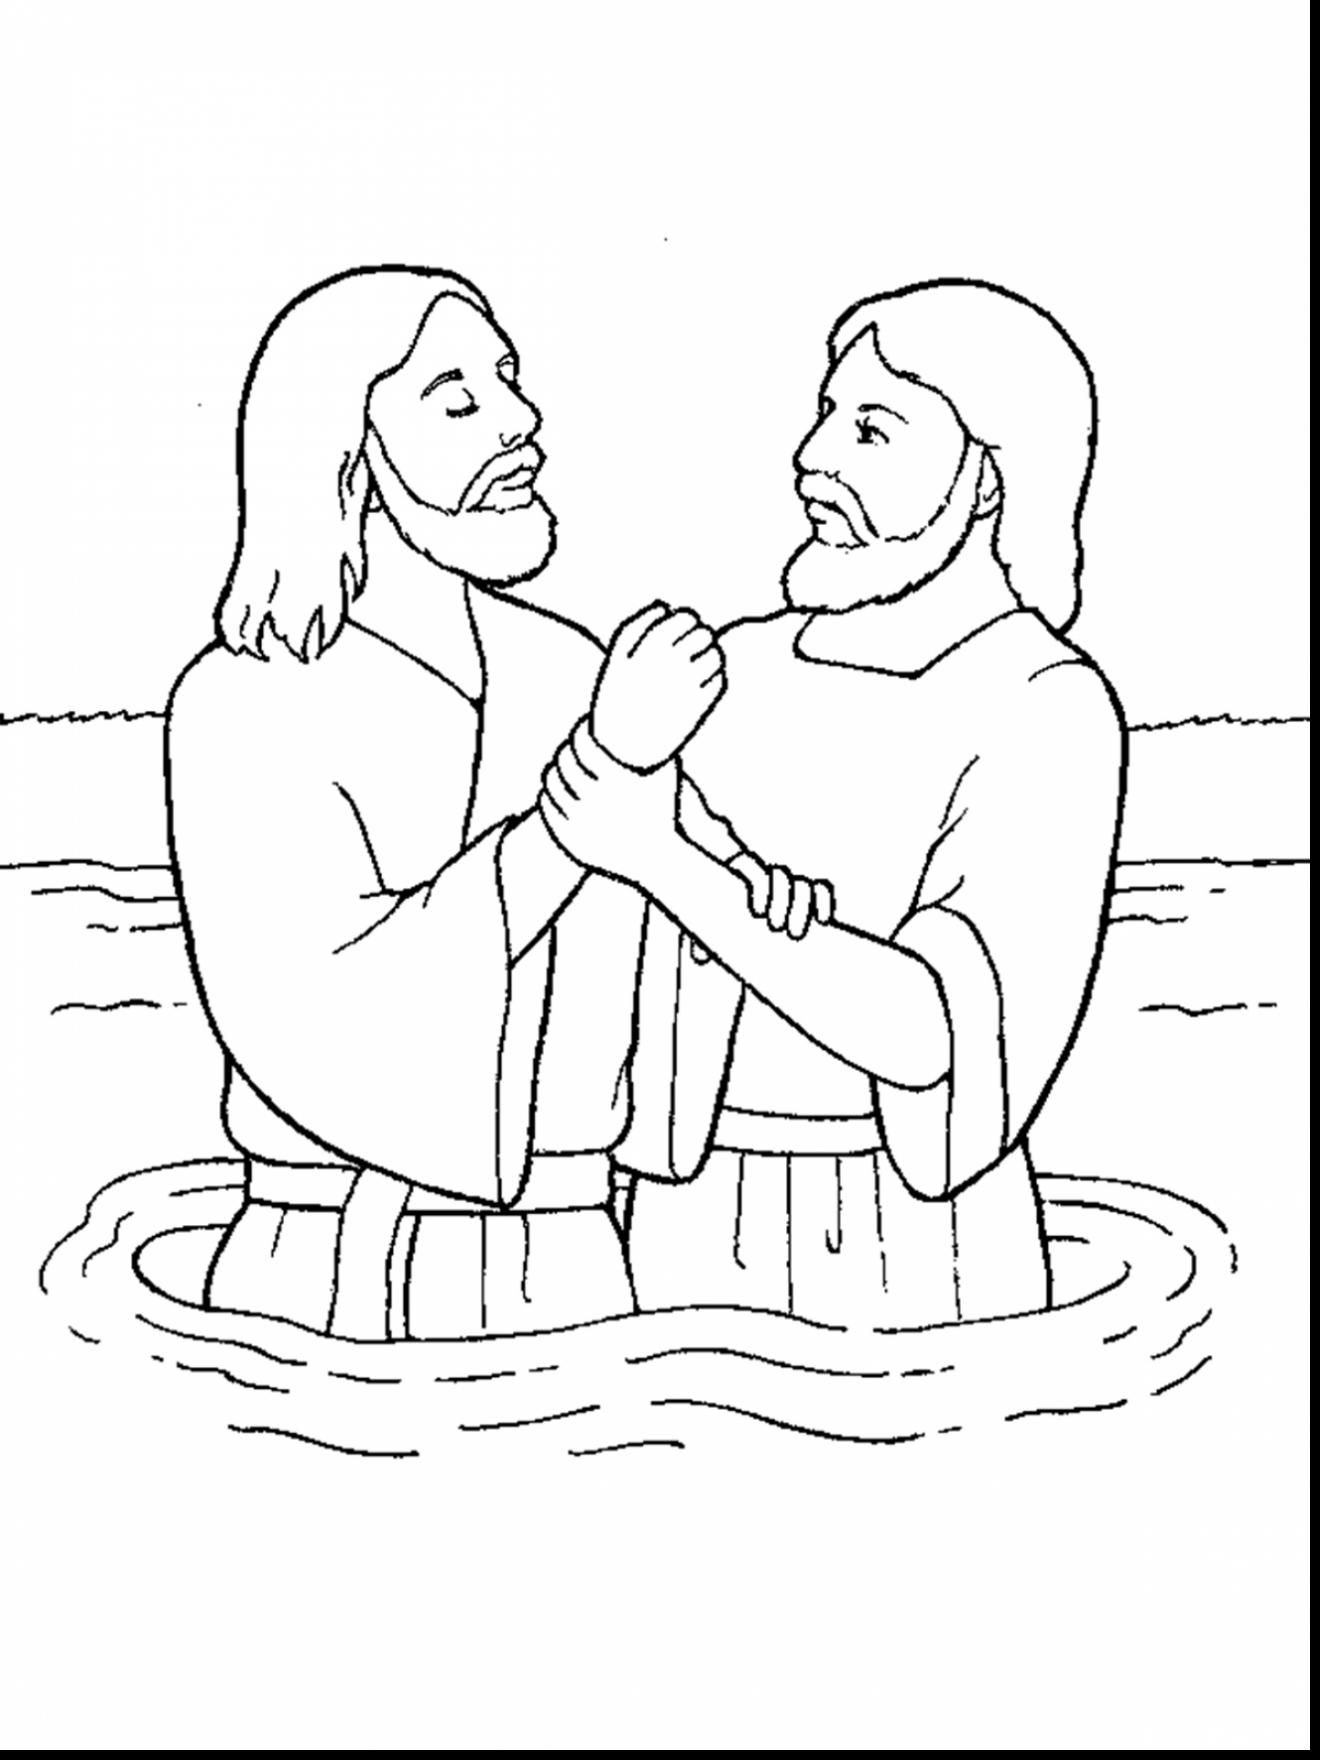 Superb John The Baptist Coloring Pages For Kids With